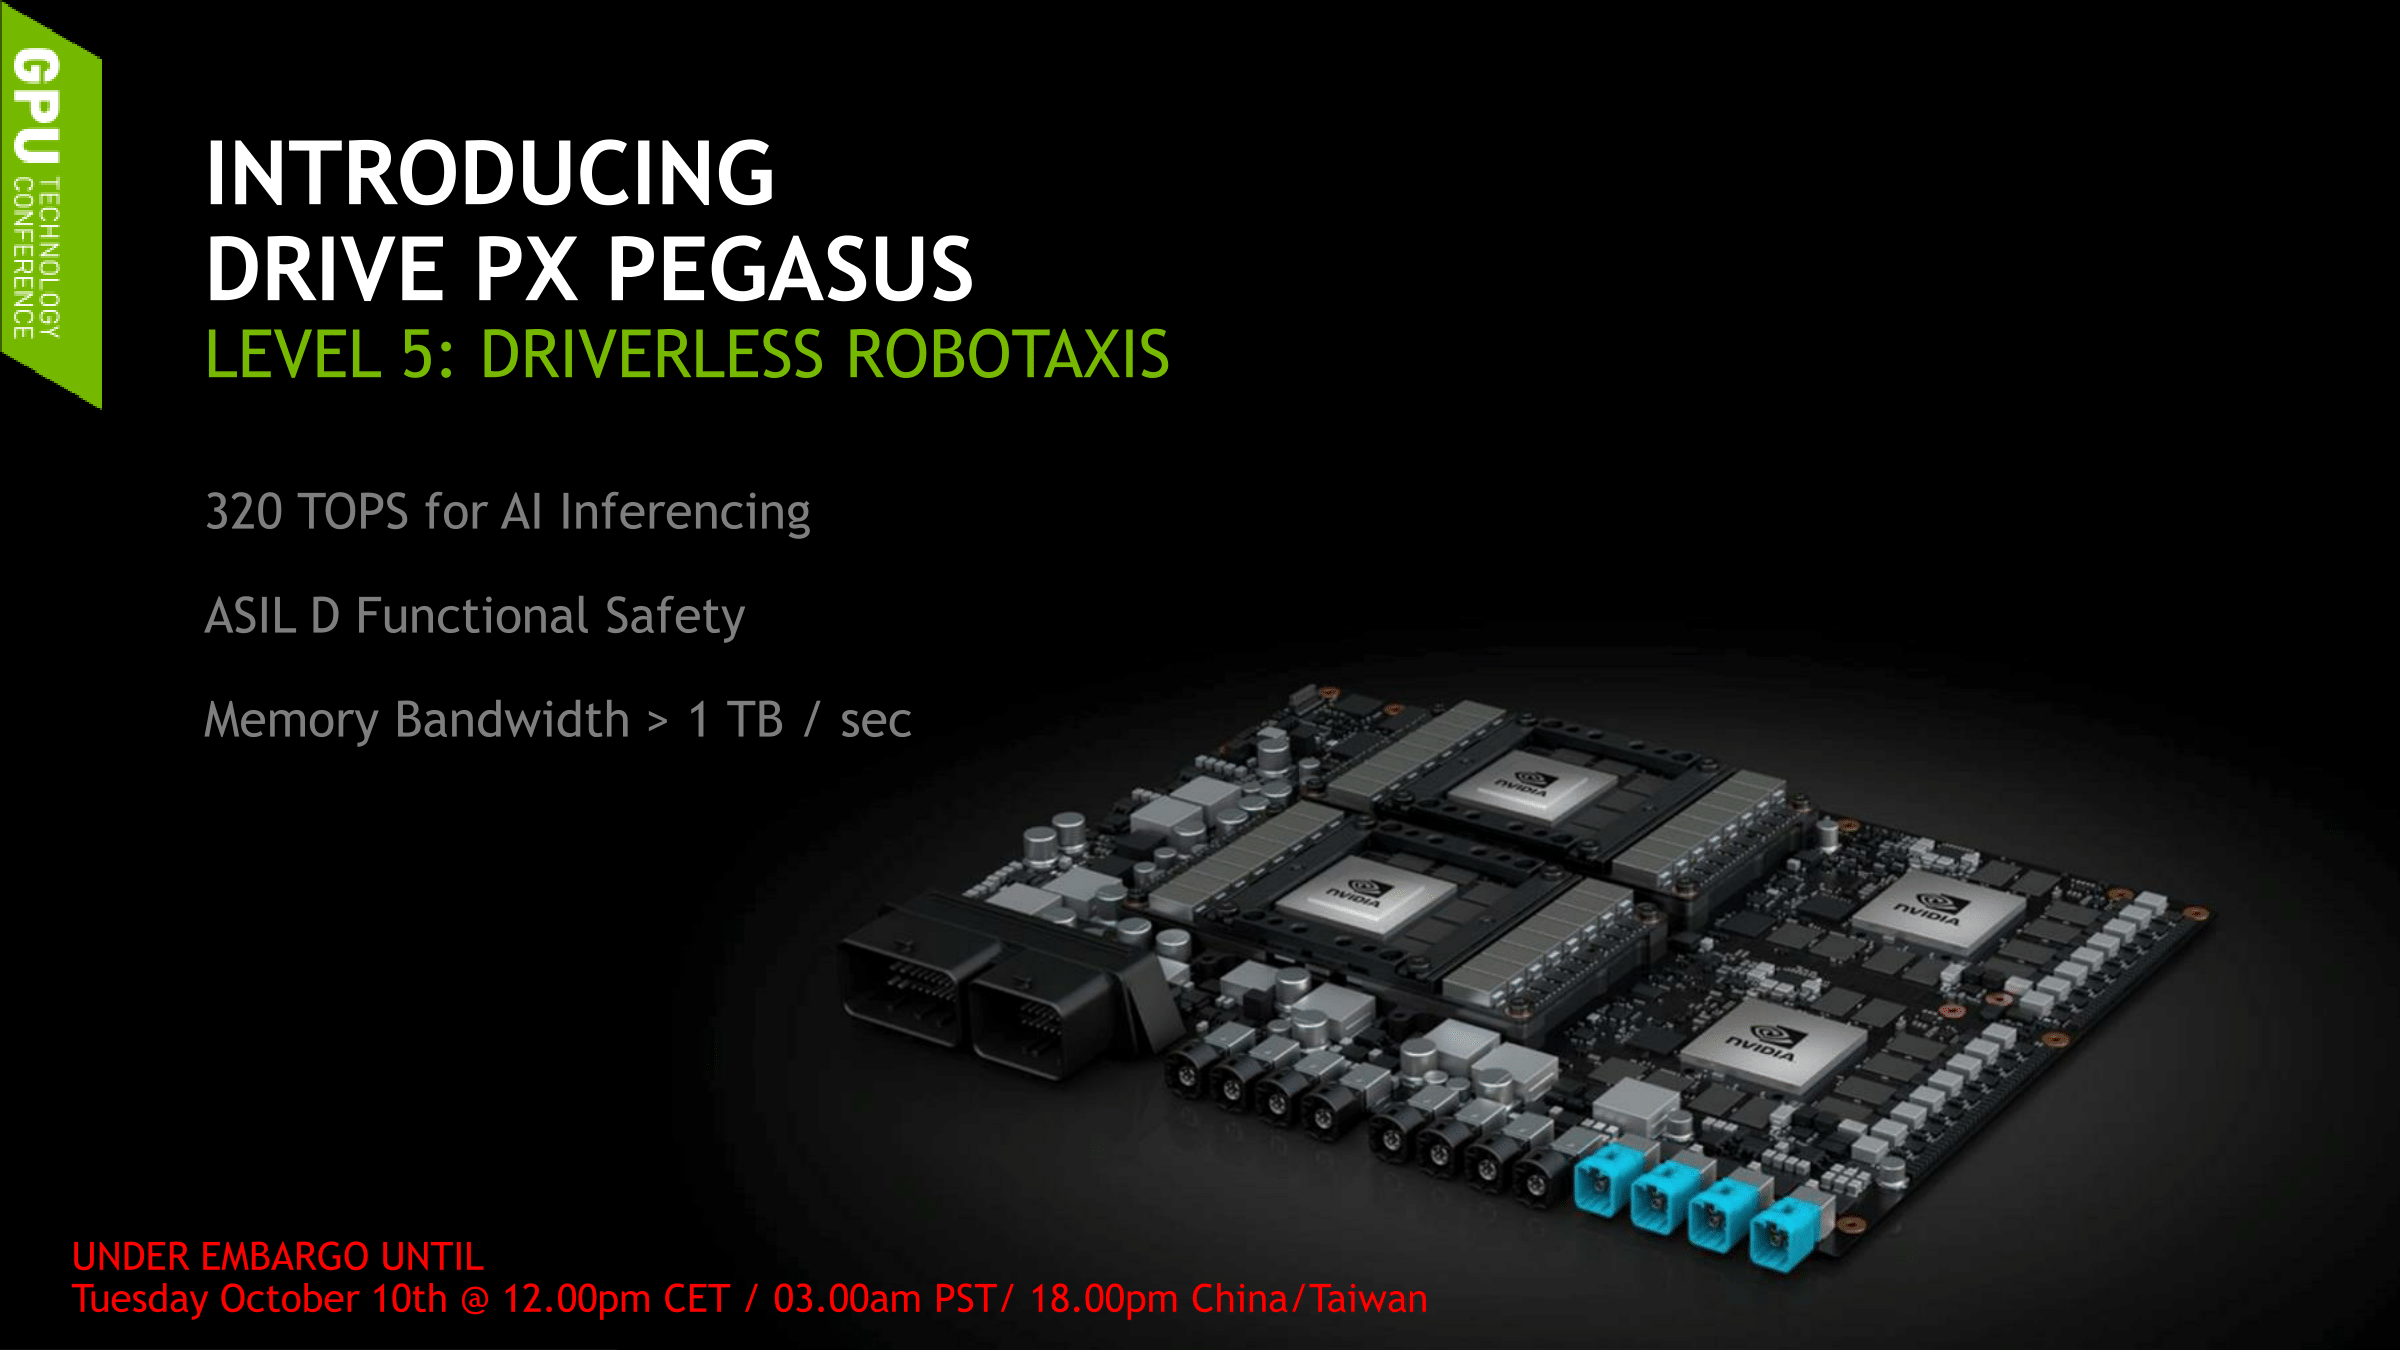 Nvidia's Drive PX Pegasus is its newest self-driving supercomputer